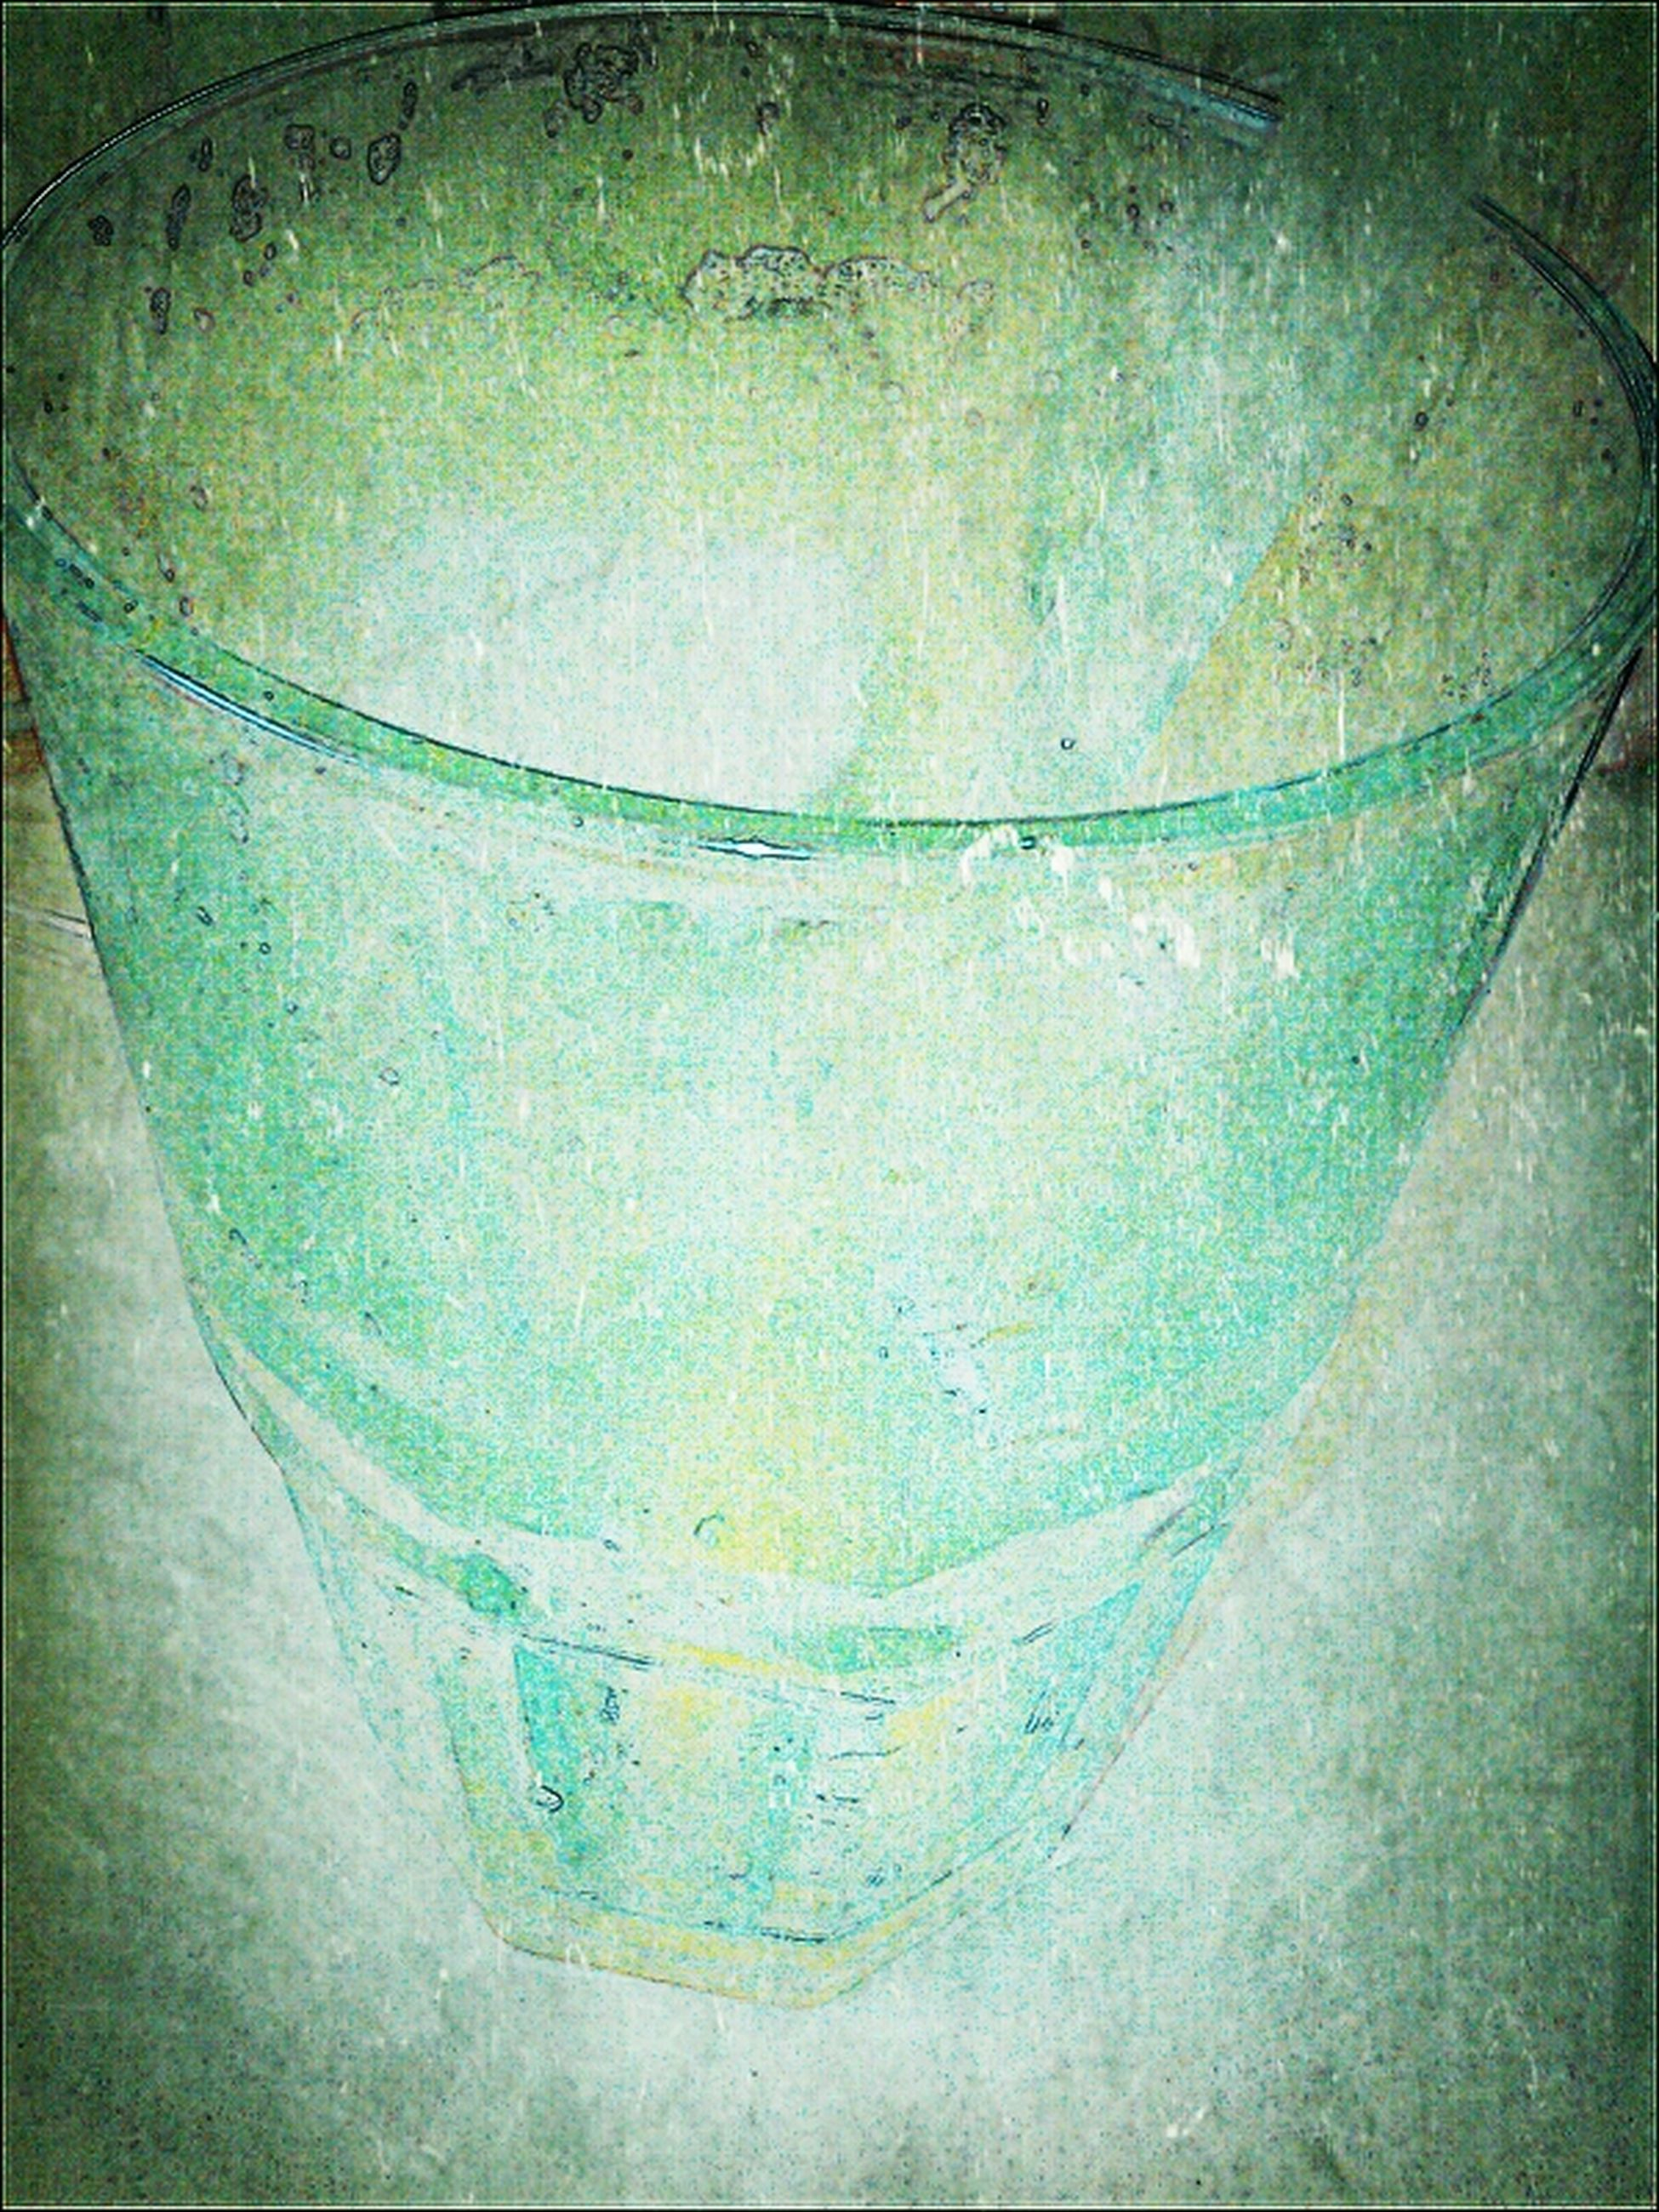 indoors, close-up, refreshment, drink, glass - material, drinking glass, still life, transparent, single object, auto post production filter, glass, food and drink, blue, green color, no people, freshness, liquid, table, reflection, transfer print